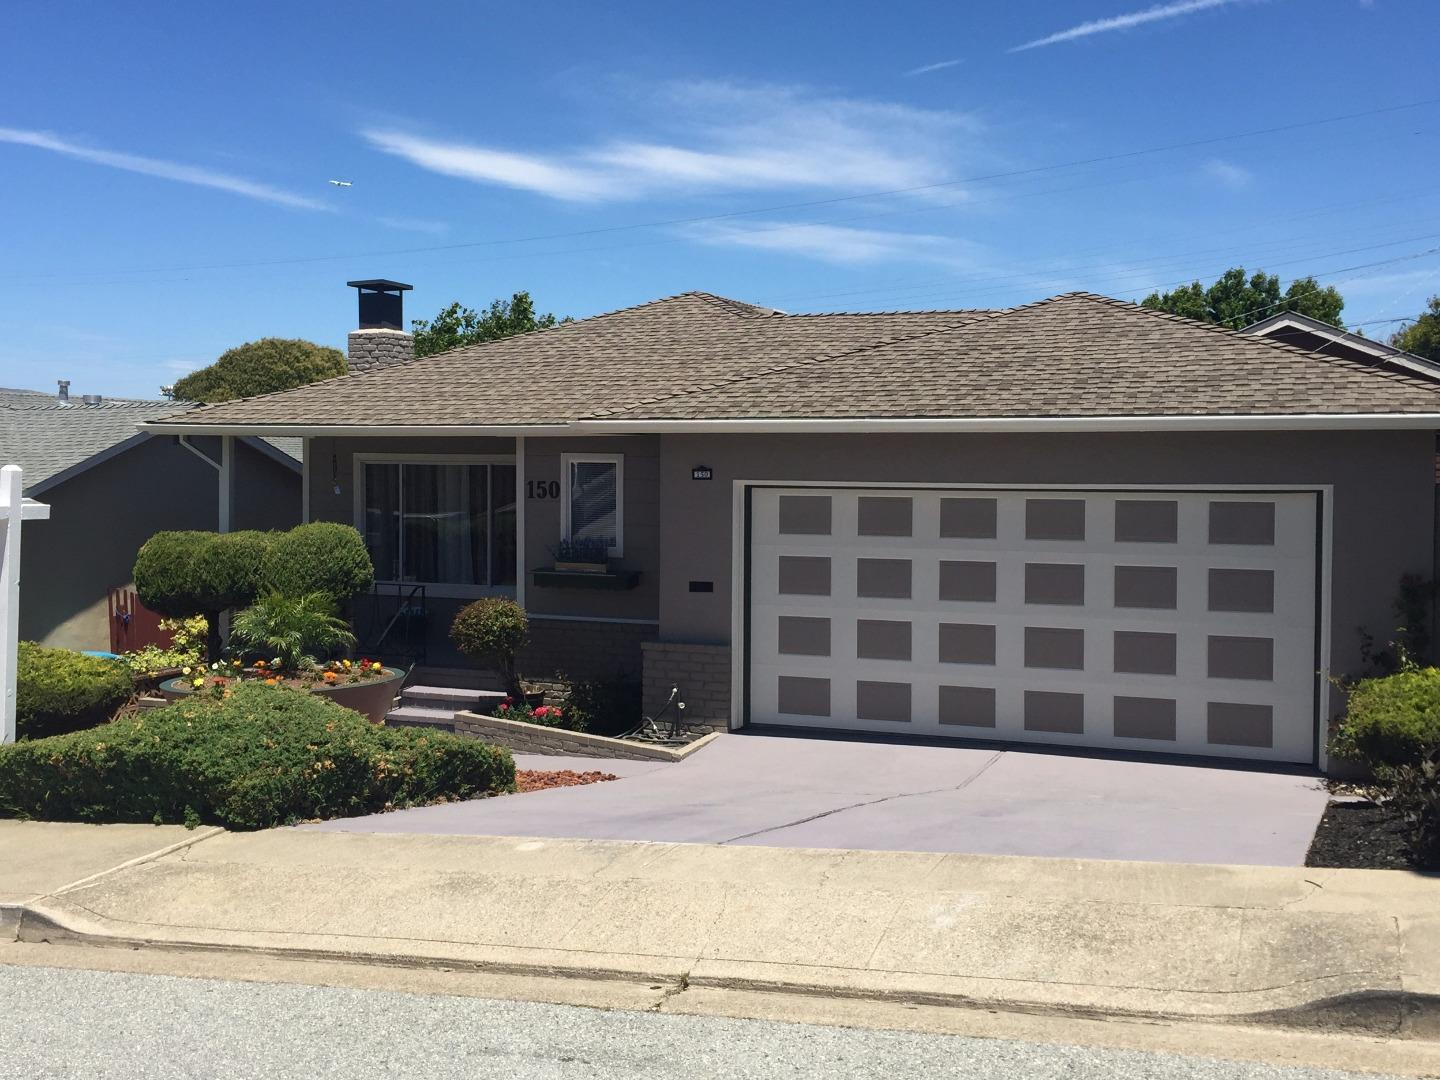 Single Family Home for Sale at 150 Parkview Drive San Bruno, California 94066 United States